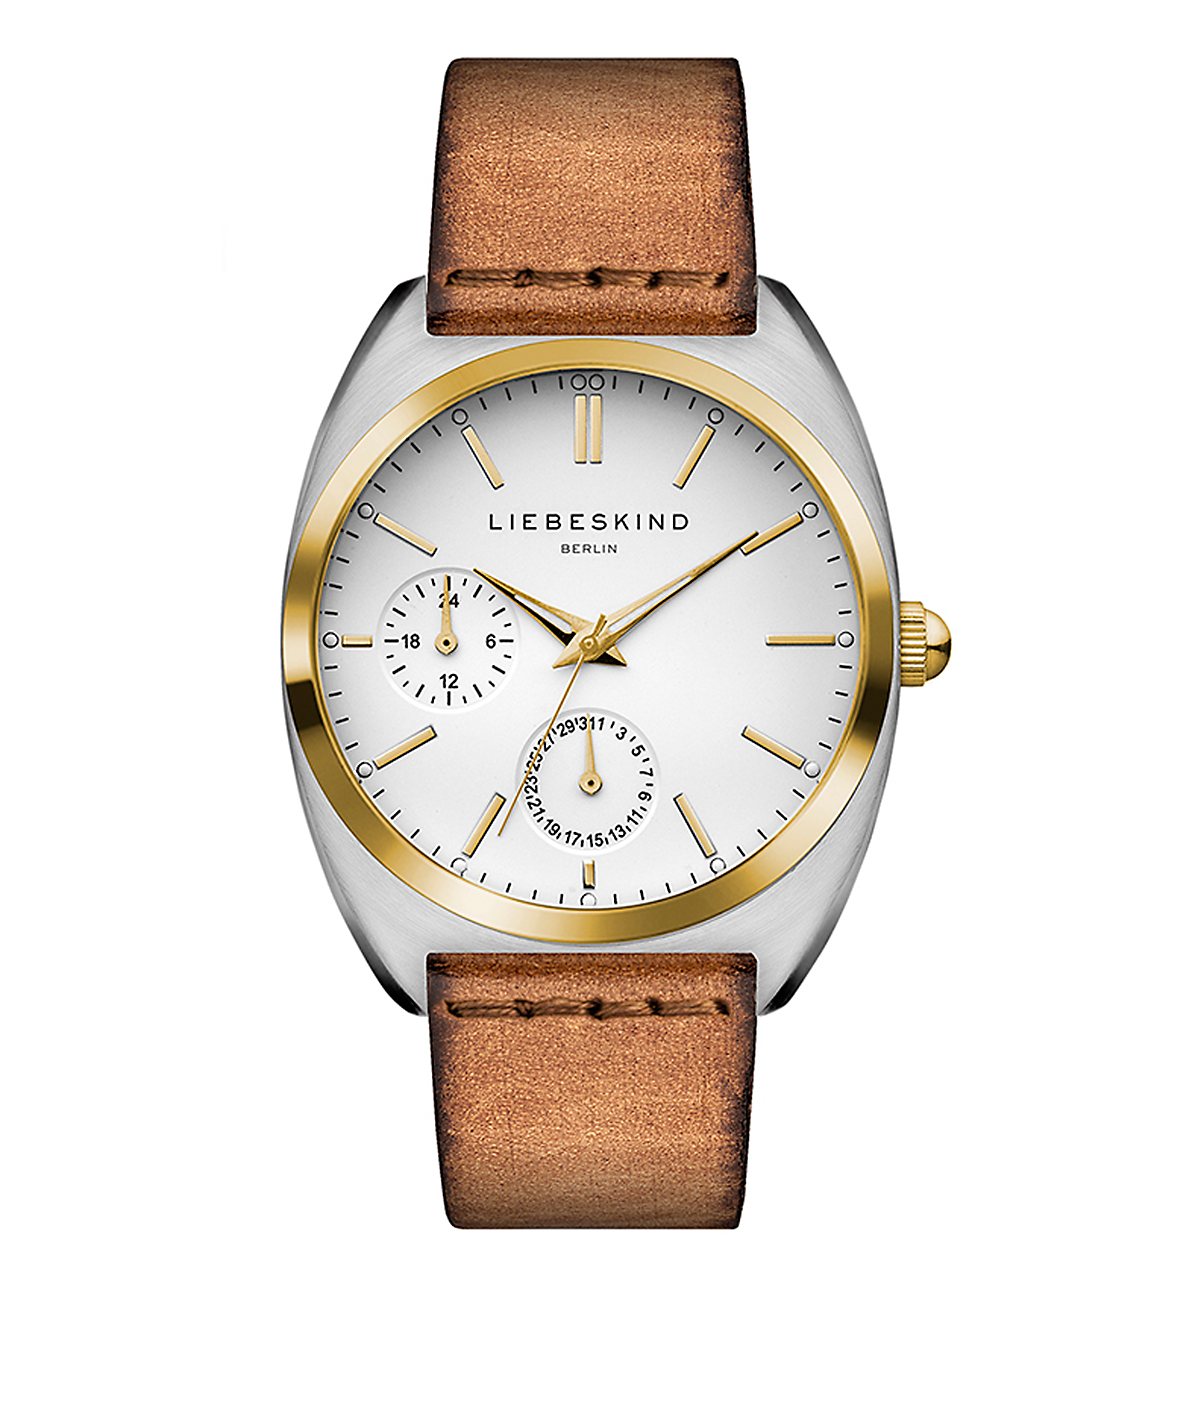 Watch from liebeskind